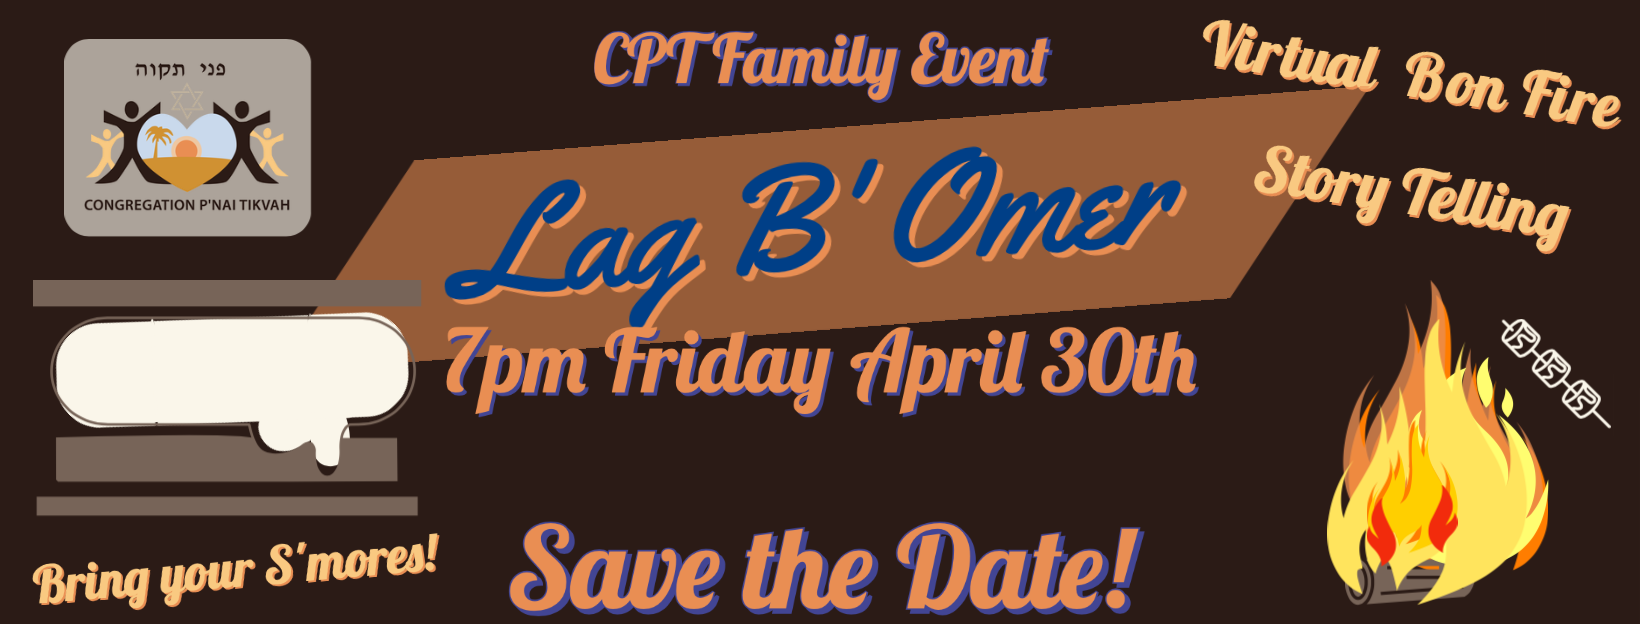 LAG B'OMER Date: Fri., April 30, 7:00pm What: Lag B'Omer Virtual Bon Fire Location: Zoom Event Details: Save the Date for this Family Friendly Zoom event. Story Telling, S'mores and More. More details to follow